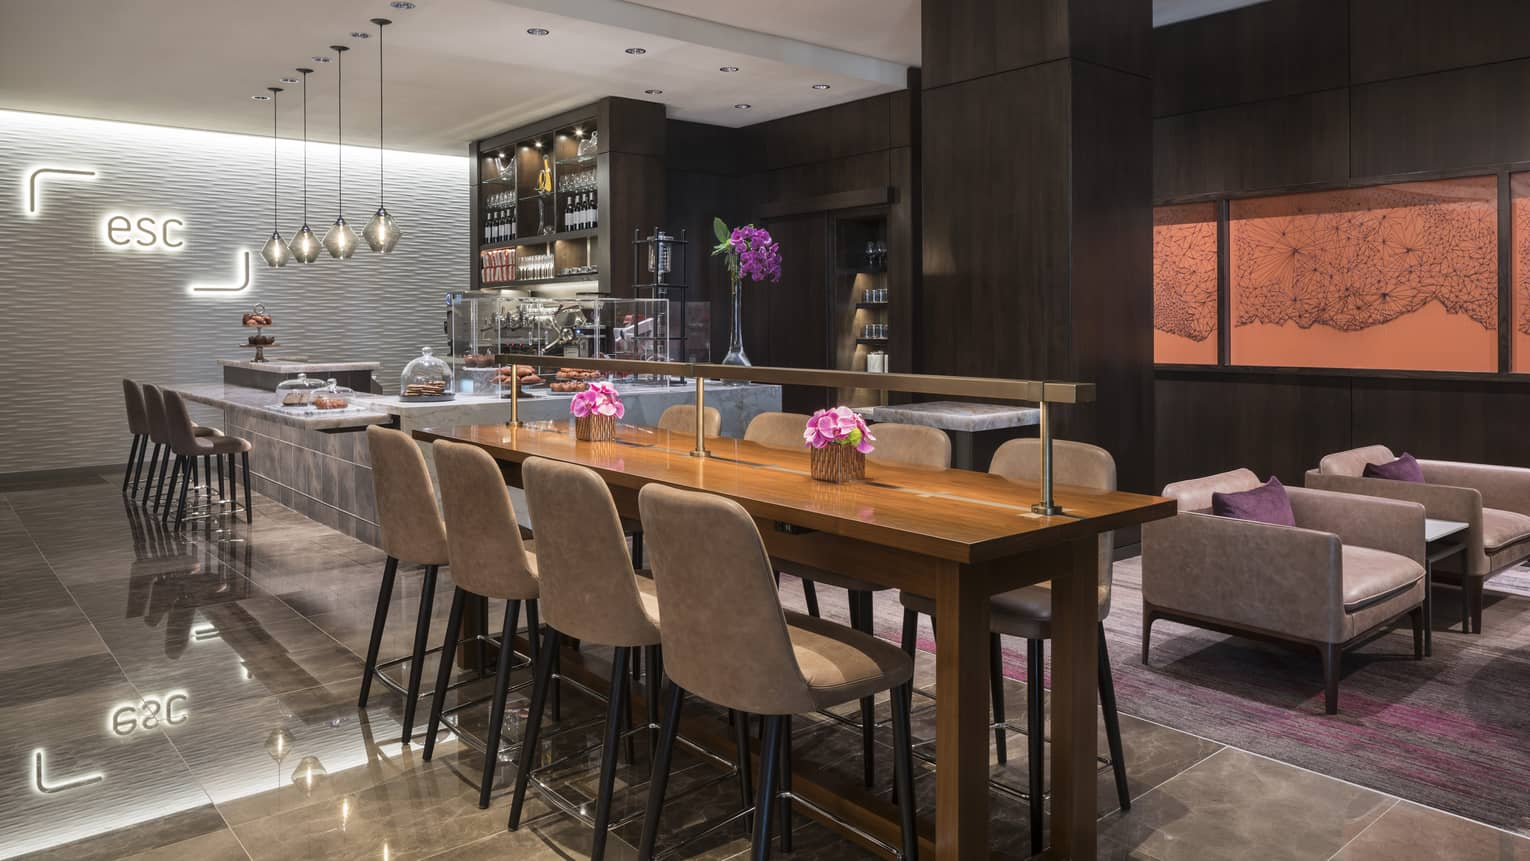 Dining room with long communal table, stone and marble bar, modern light, sign